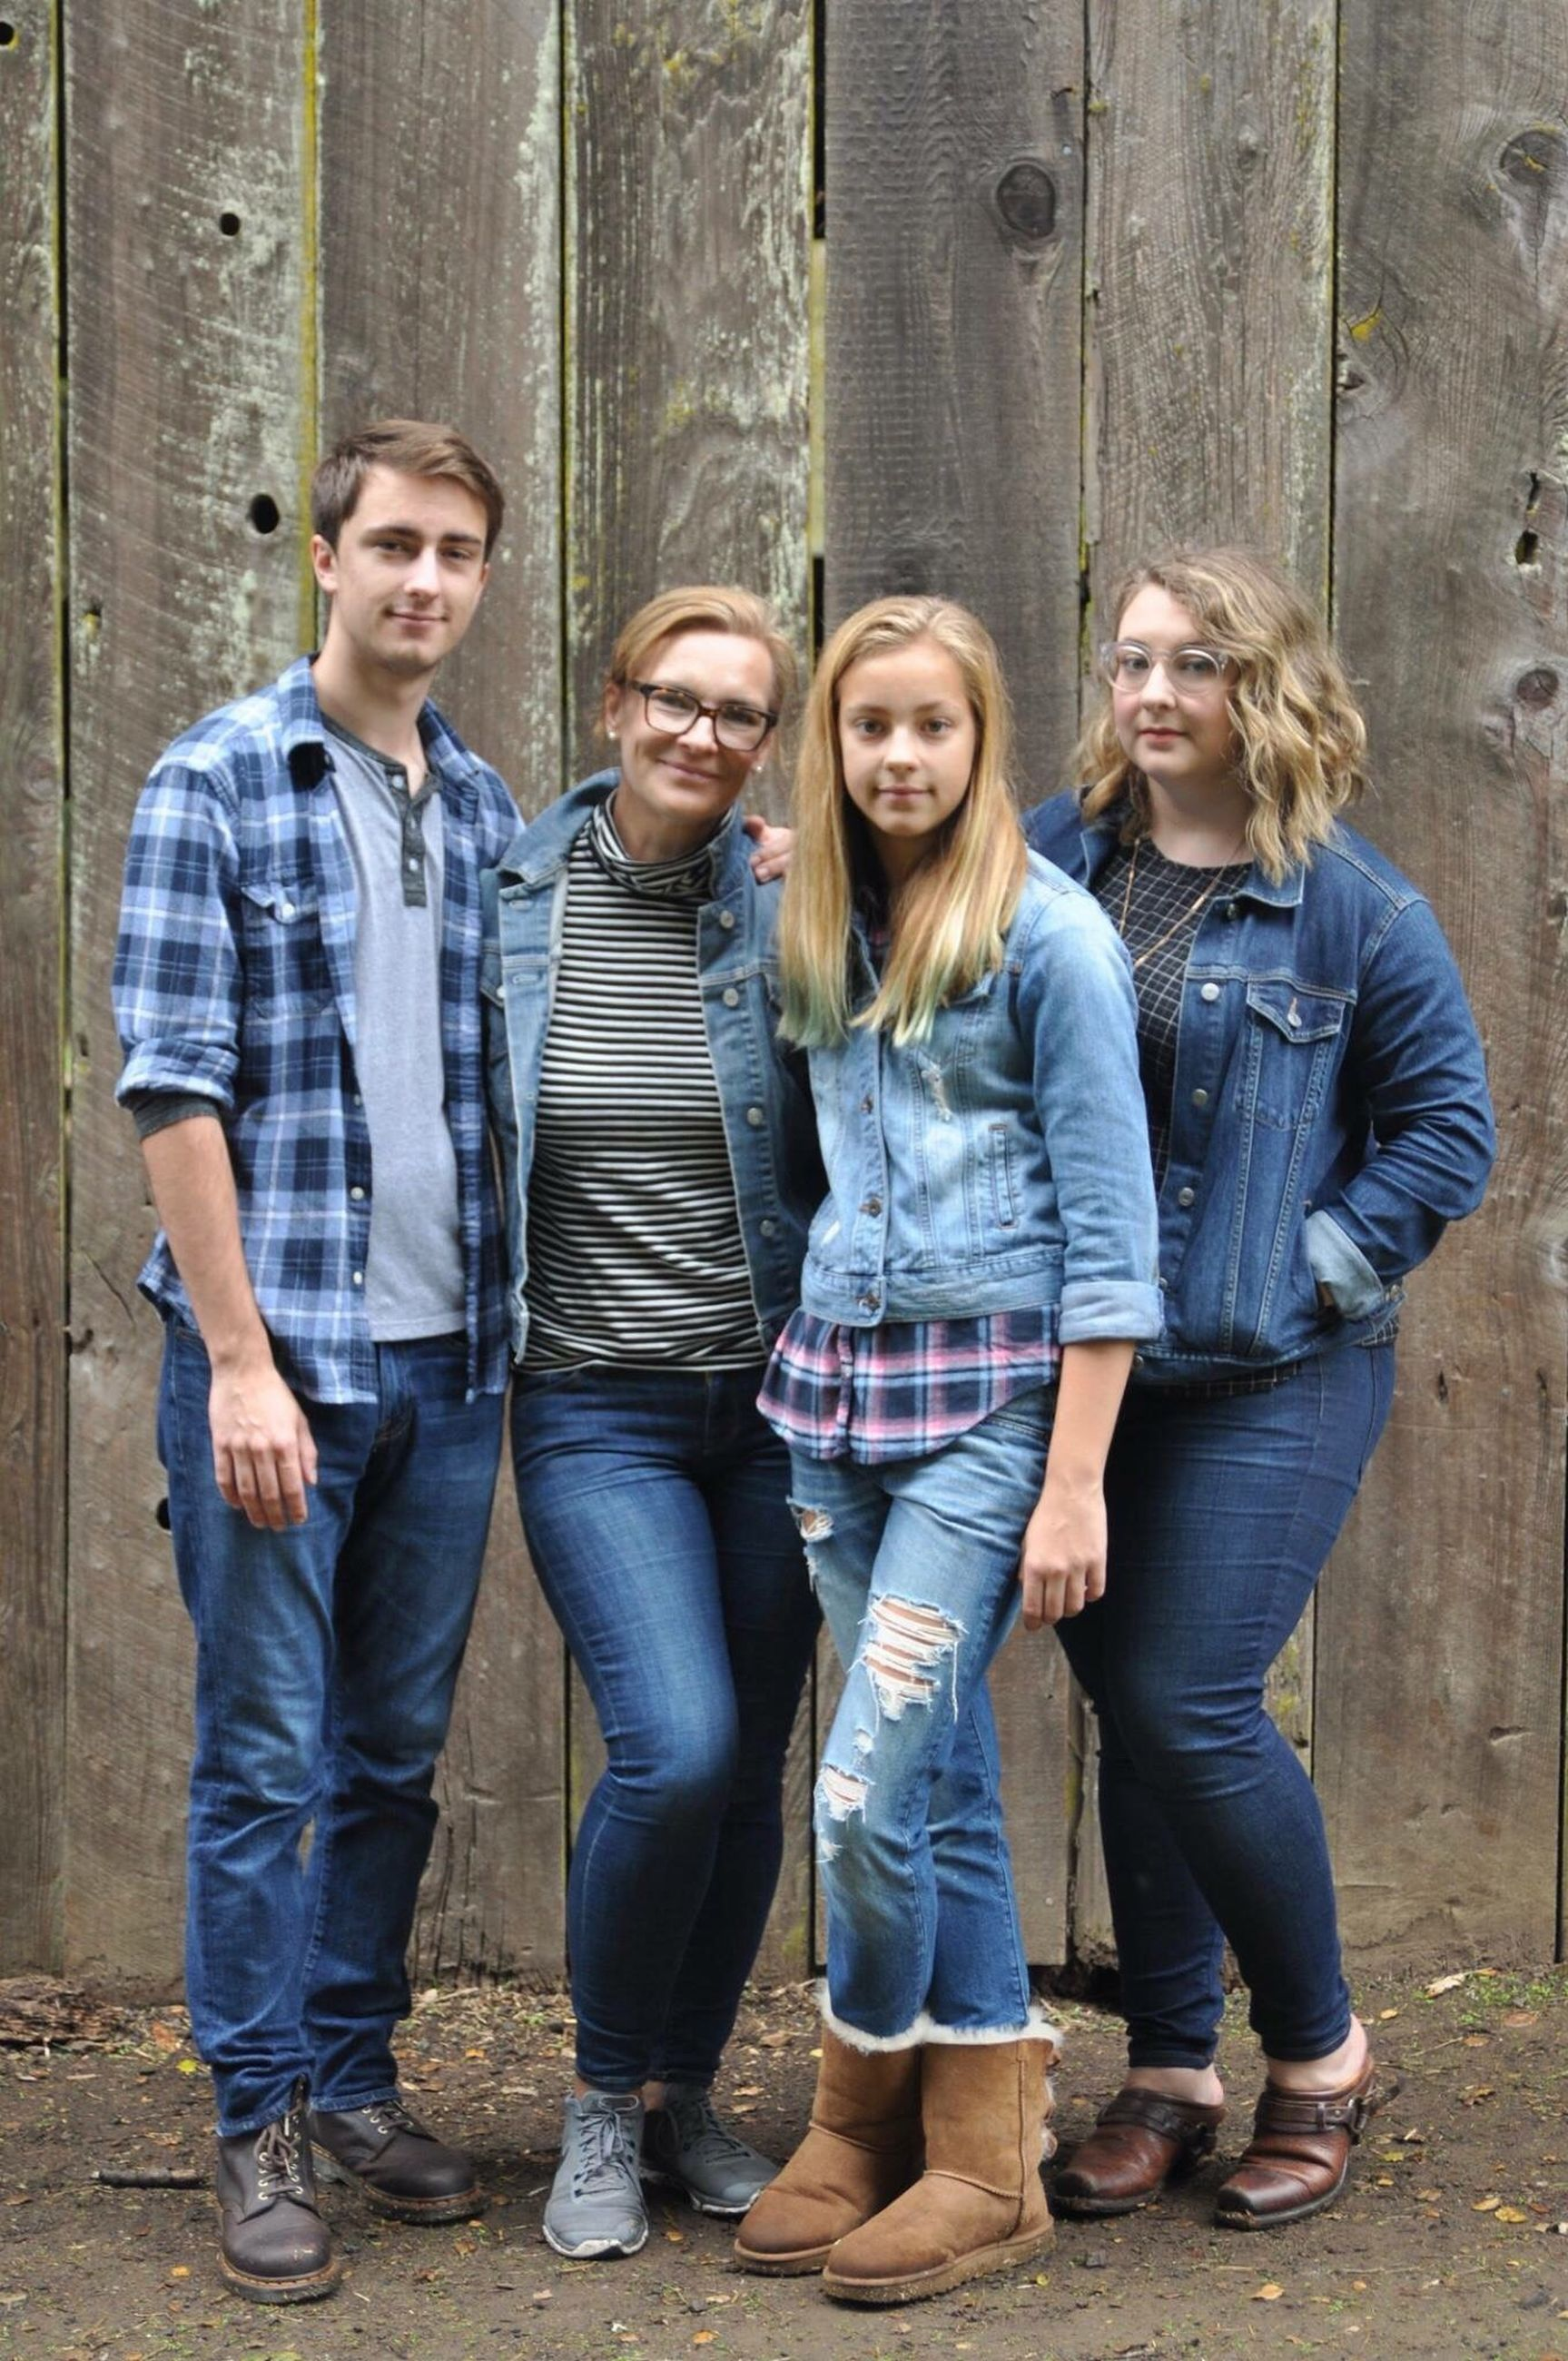 casual clothing, young adult, jeans, young women, day, standing, togetherness, young men, friendship, full length, front view, hands in pockets, outdoors, bonding, leisure activity, looking at camera, portrait, group of people, men, blond hair, people, adult, adults only